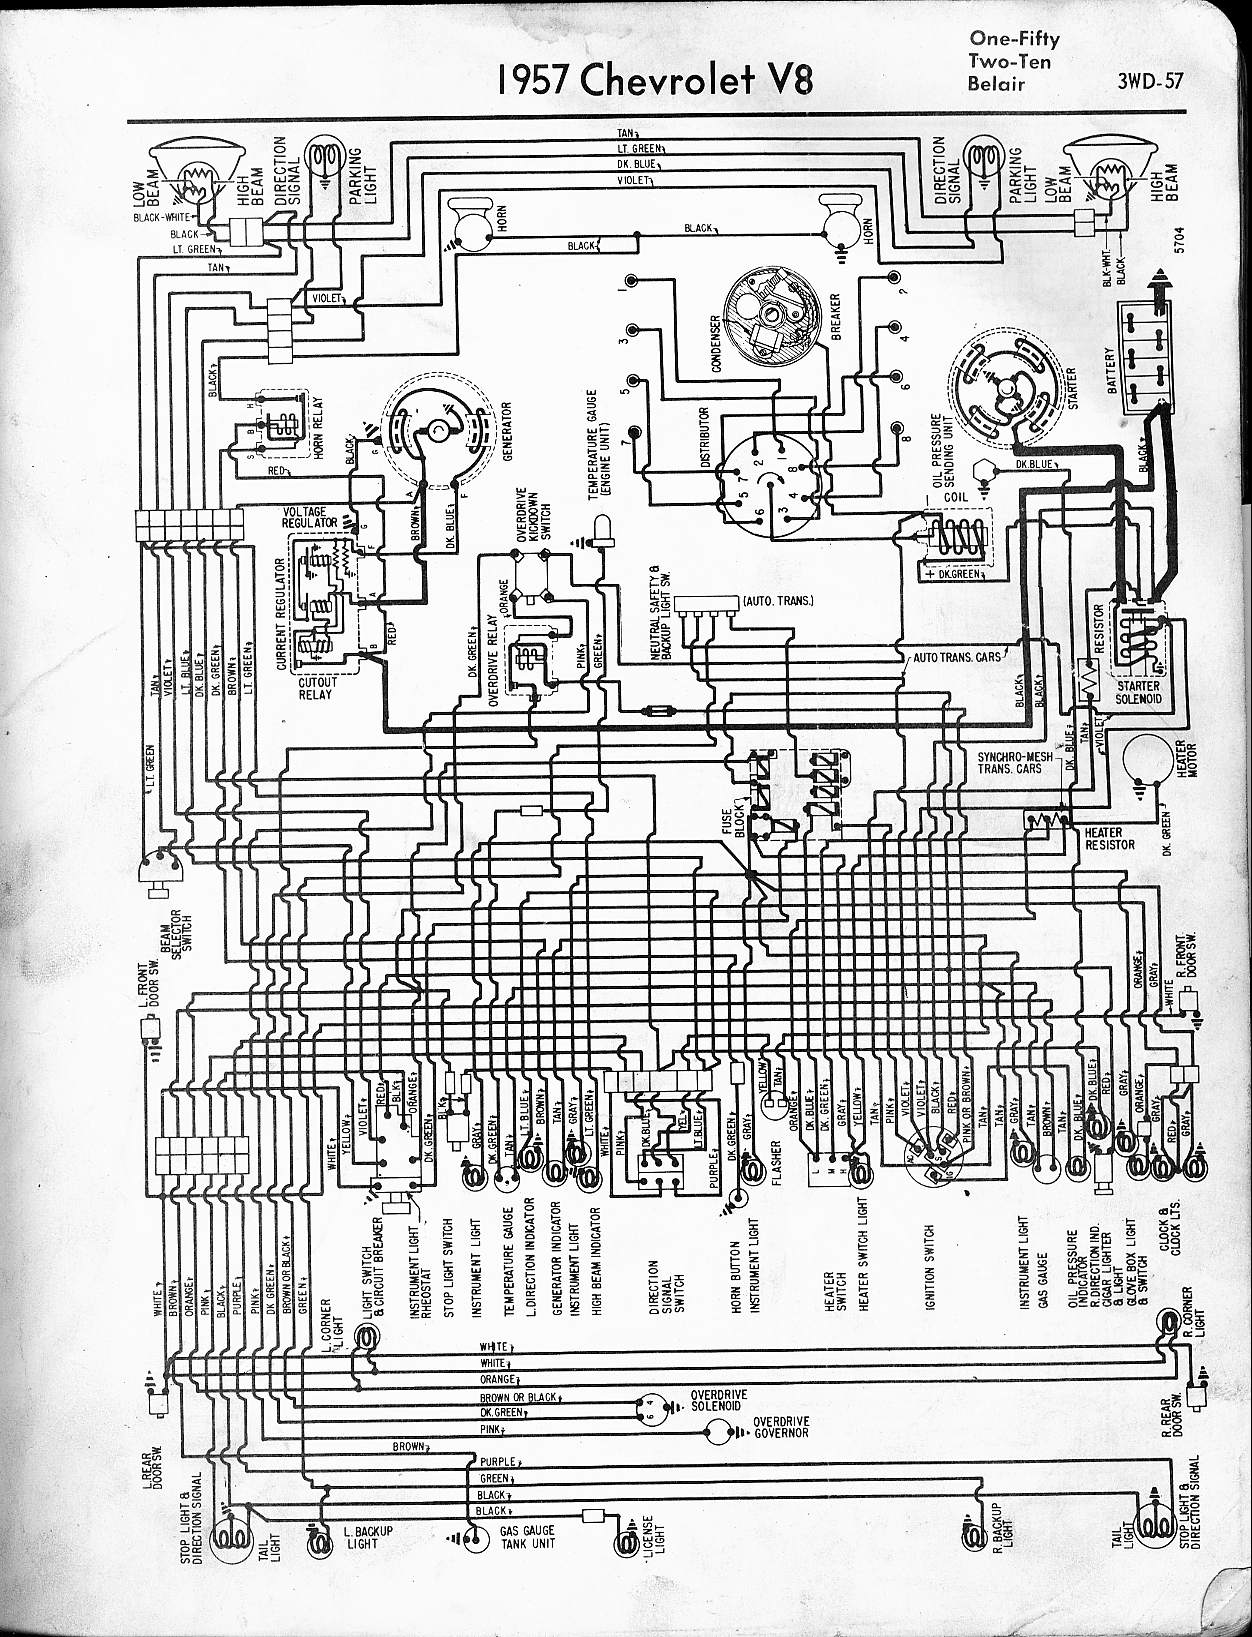 MWireChev57_3WD 057 57 65 chevy wiring diagrams 89 chevy truck ignition switch wiring diagram at virtualis.co